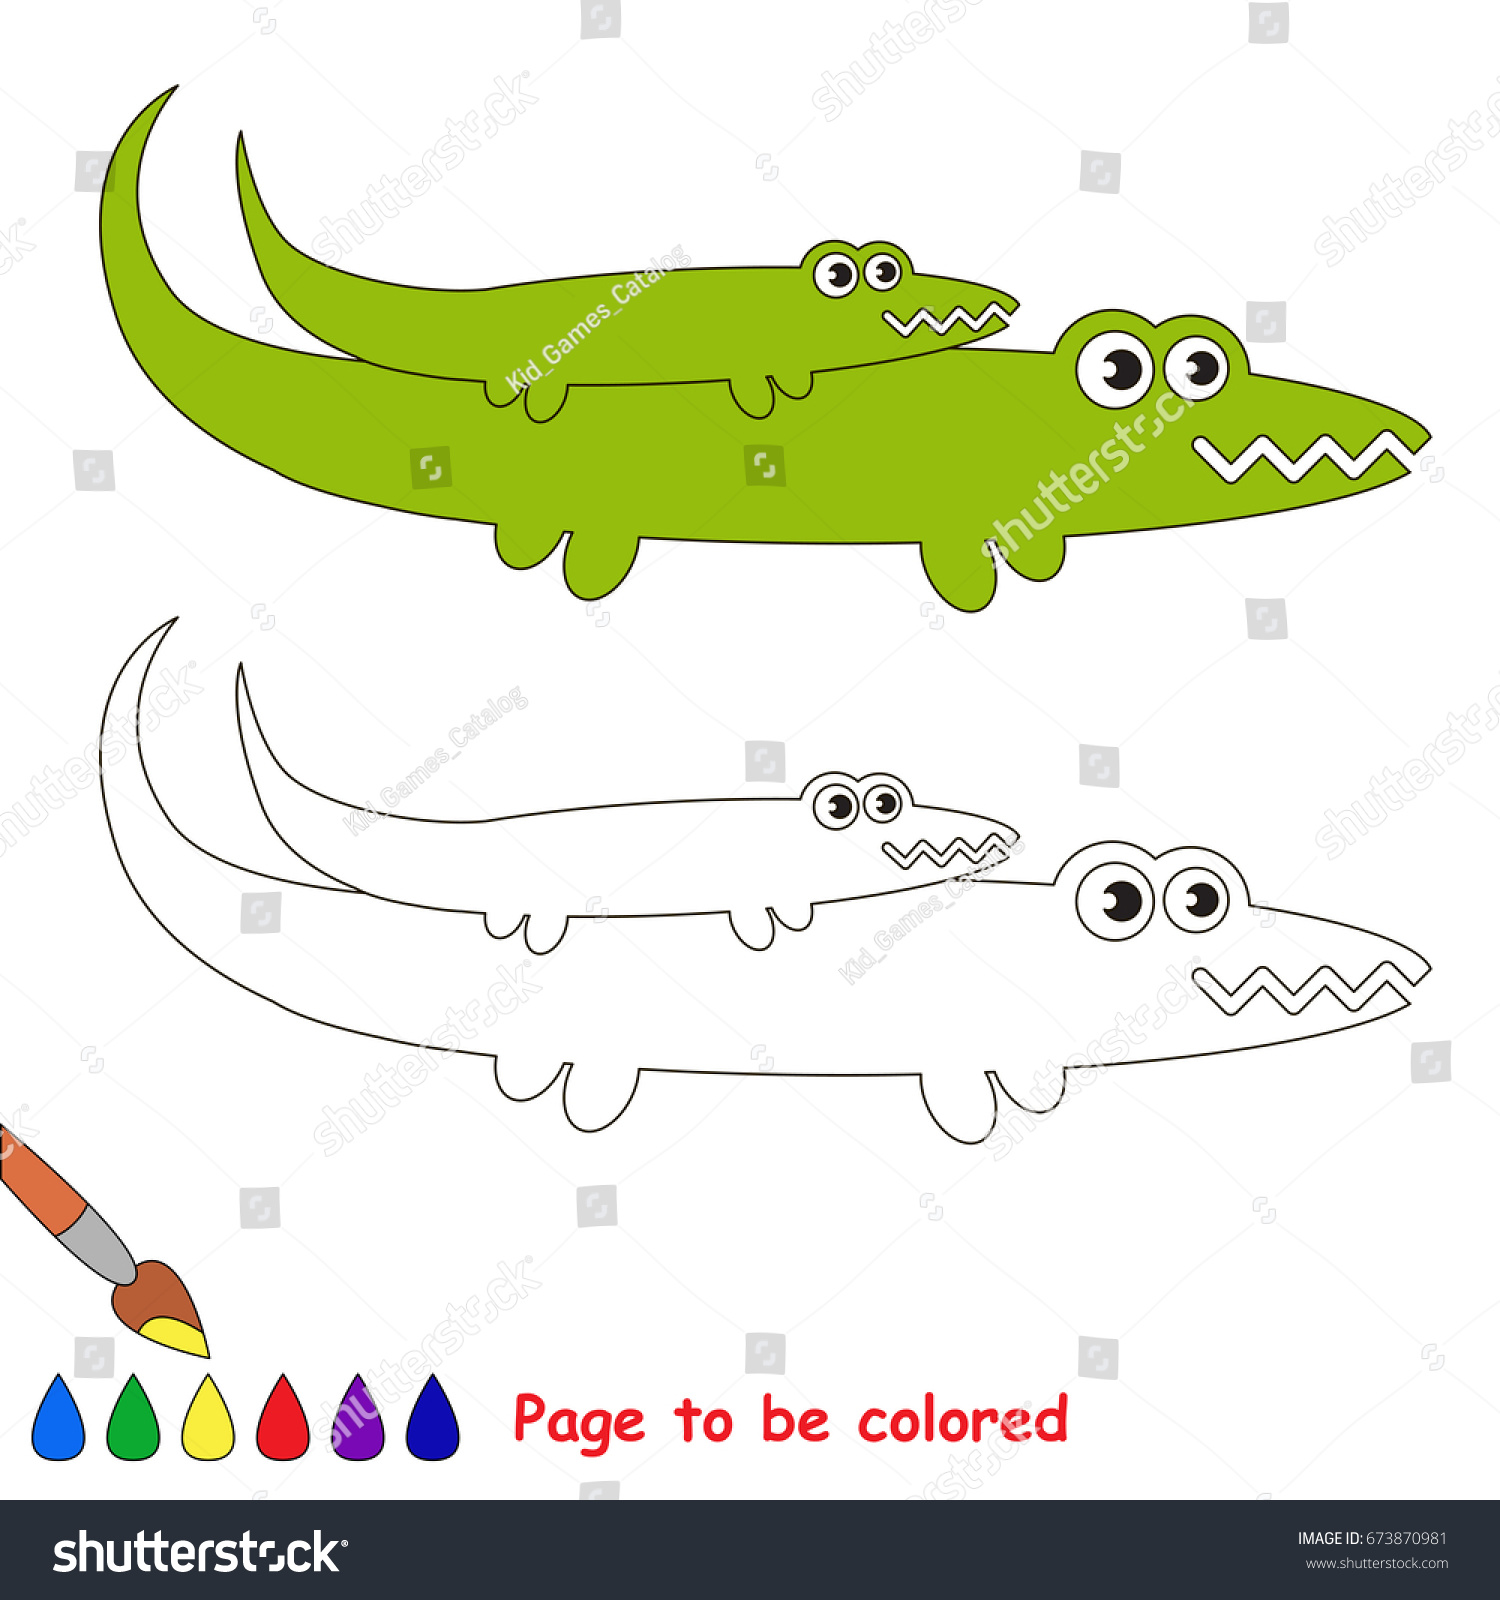 Funny Crocodile Mother Be Colored Coloring Stock Vector HD (Royalty ...